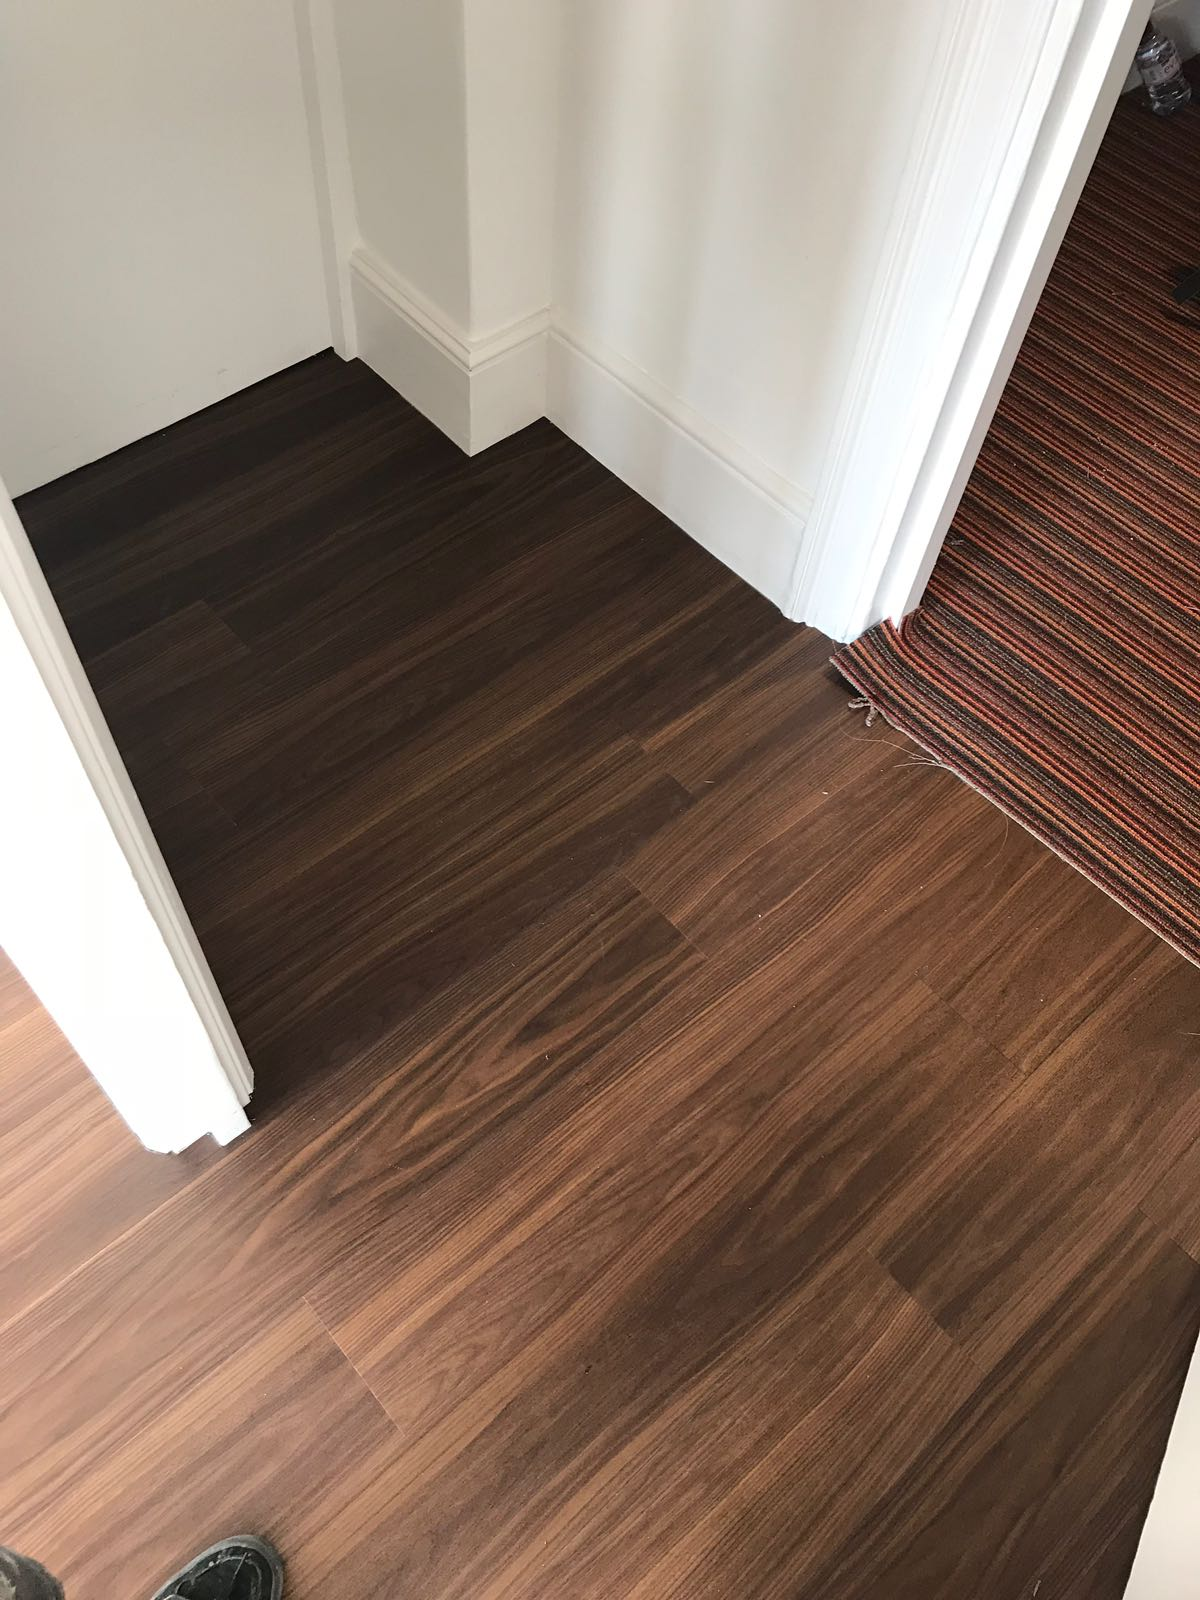 2018-04-24_Amtico Flooring Installed In Chelsea Residence (14)